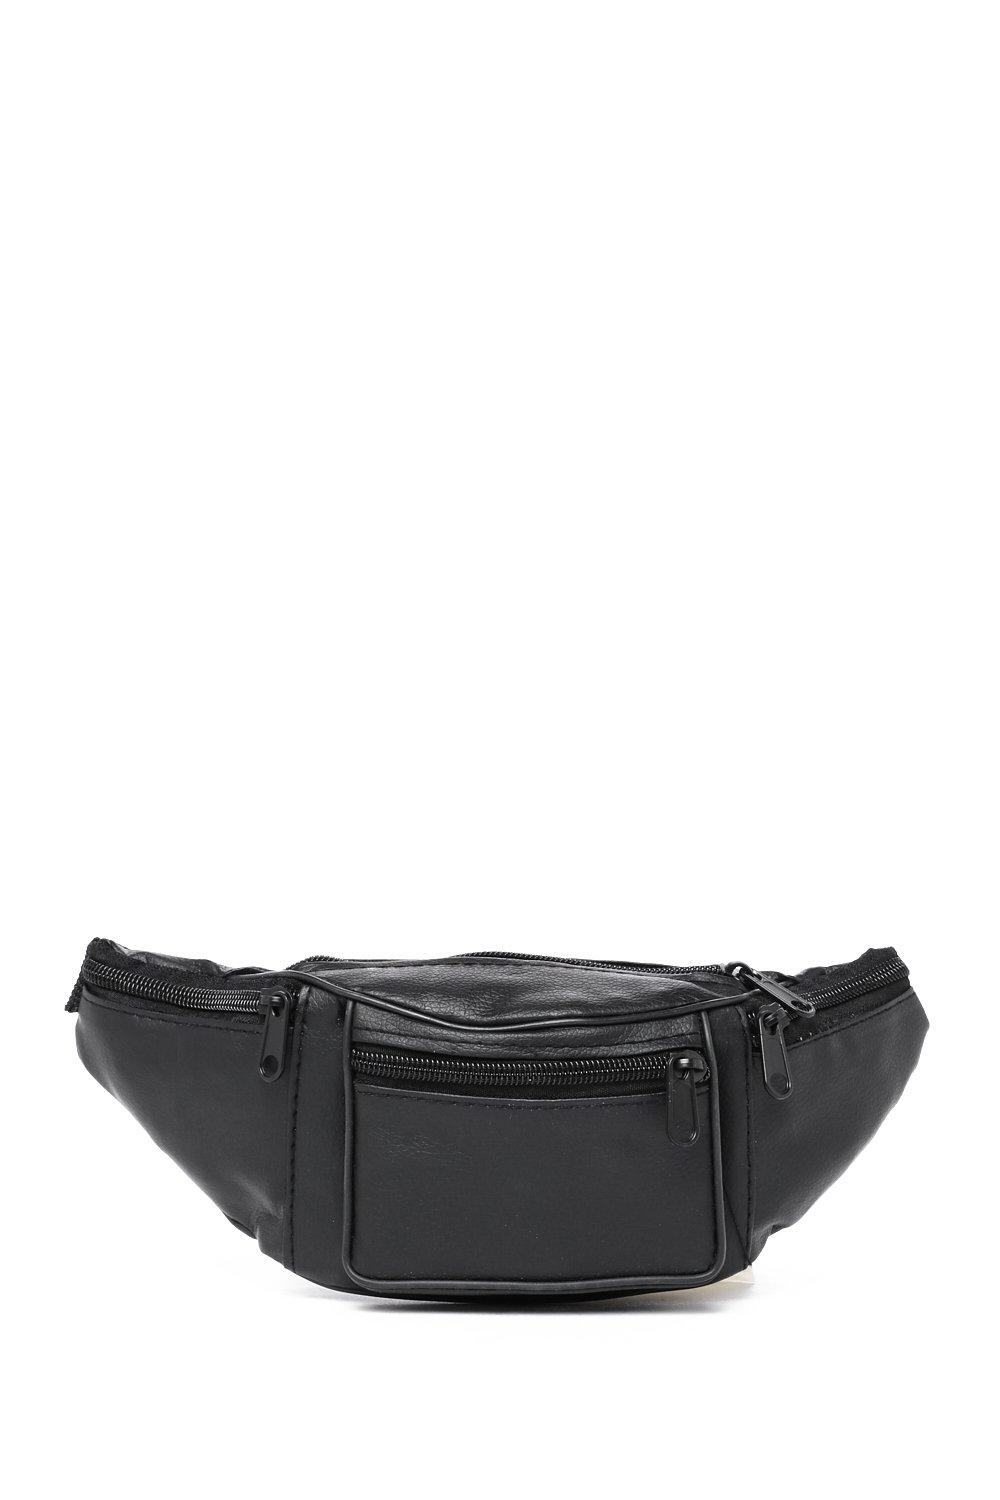 09622d24064f WANT Me First Faux Leather Fanny Pack